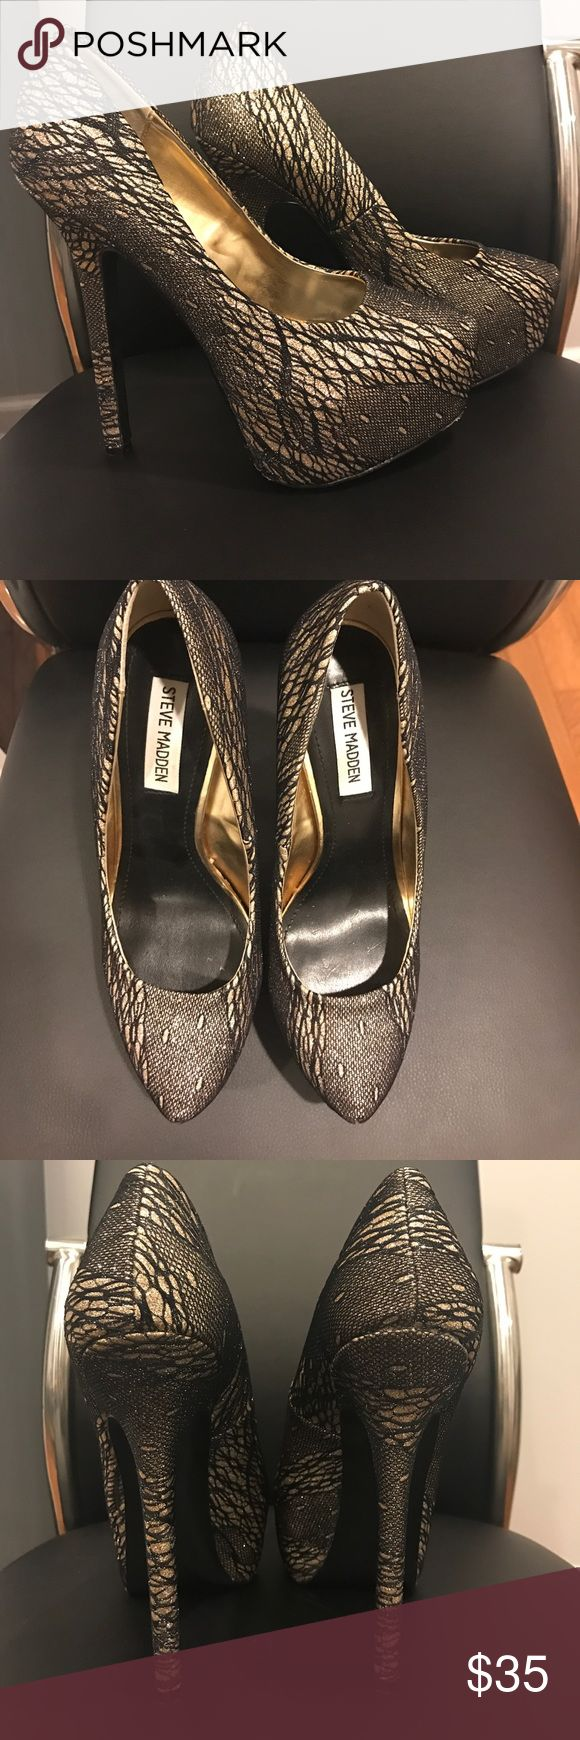 Steve Madden Pumps! Black and Gold Lace. Size 8. Never worn outside, so they are Brand New. Small scuffs on bottom sole. Very comfortable! Steve Madden Shoes Heels